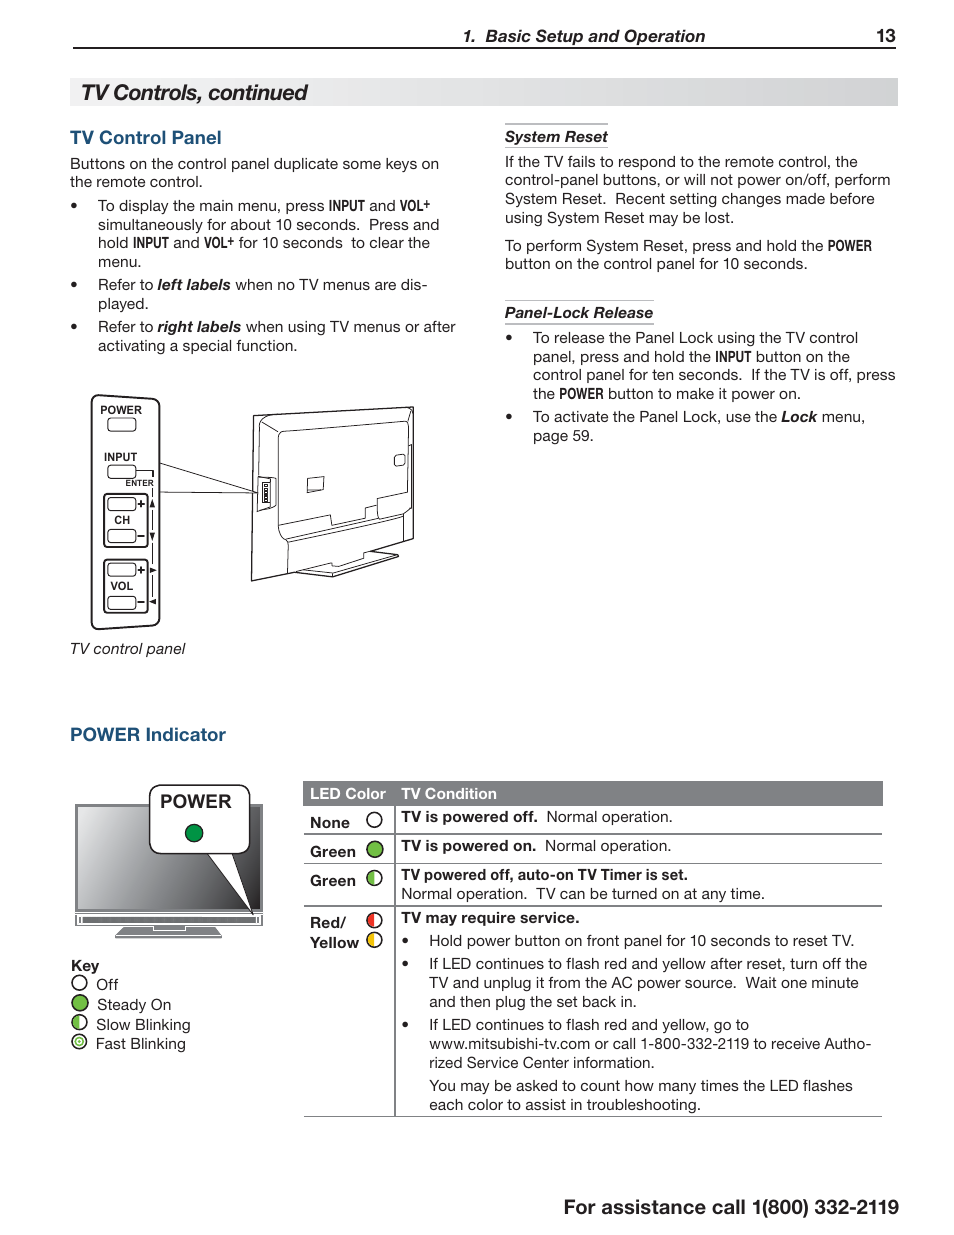 Tv control panel, Power indicator, Tv controls, continued | MITSUBISHI  ELECTRIC LT-55154 User Manual | Page 13 / 104